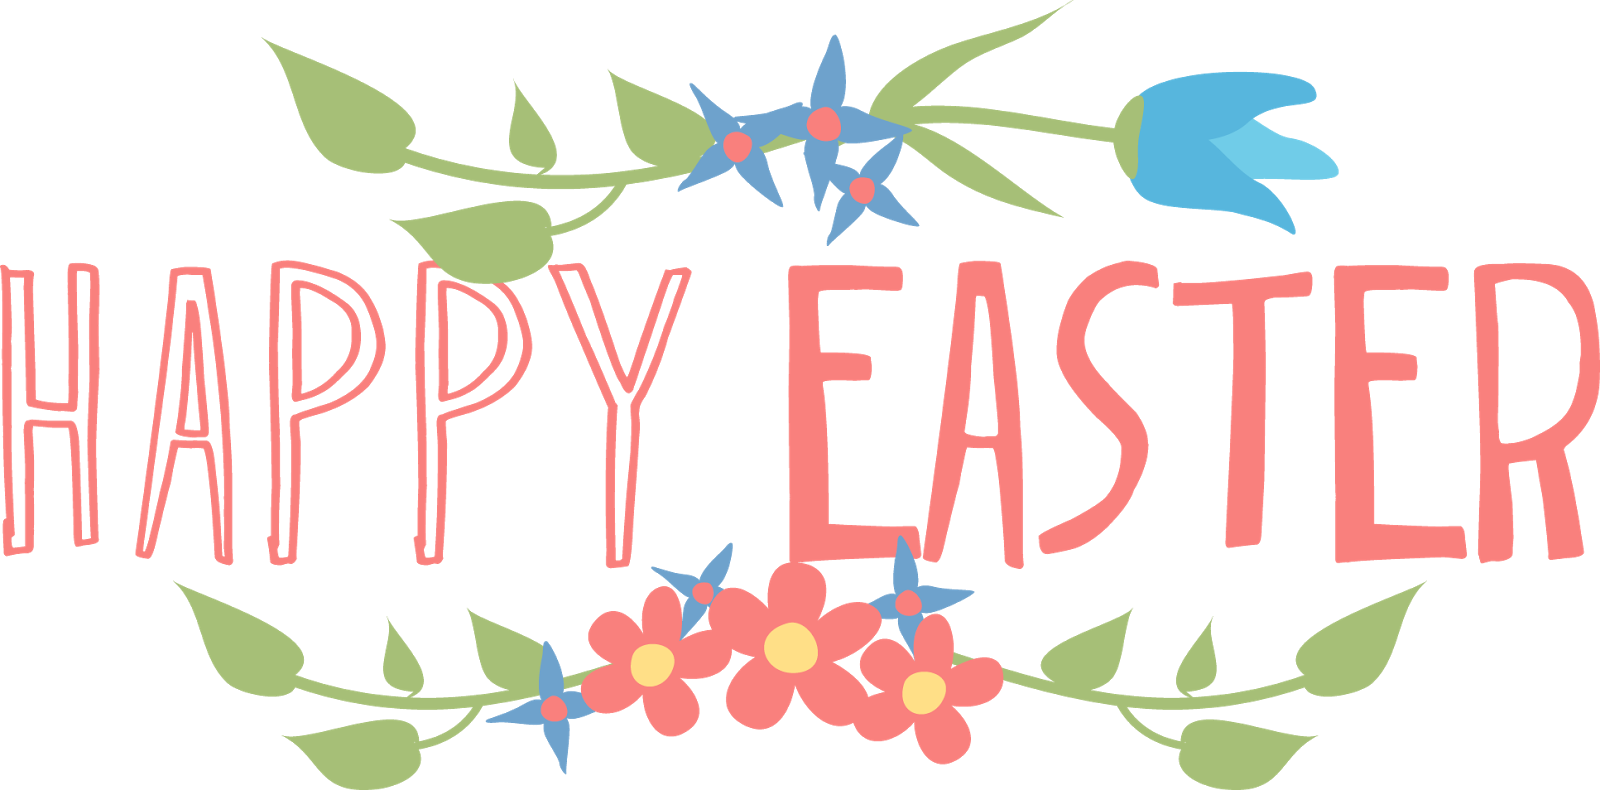 clipart easter text